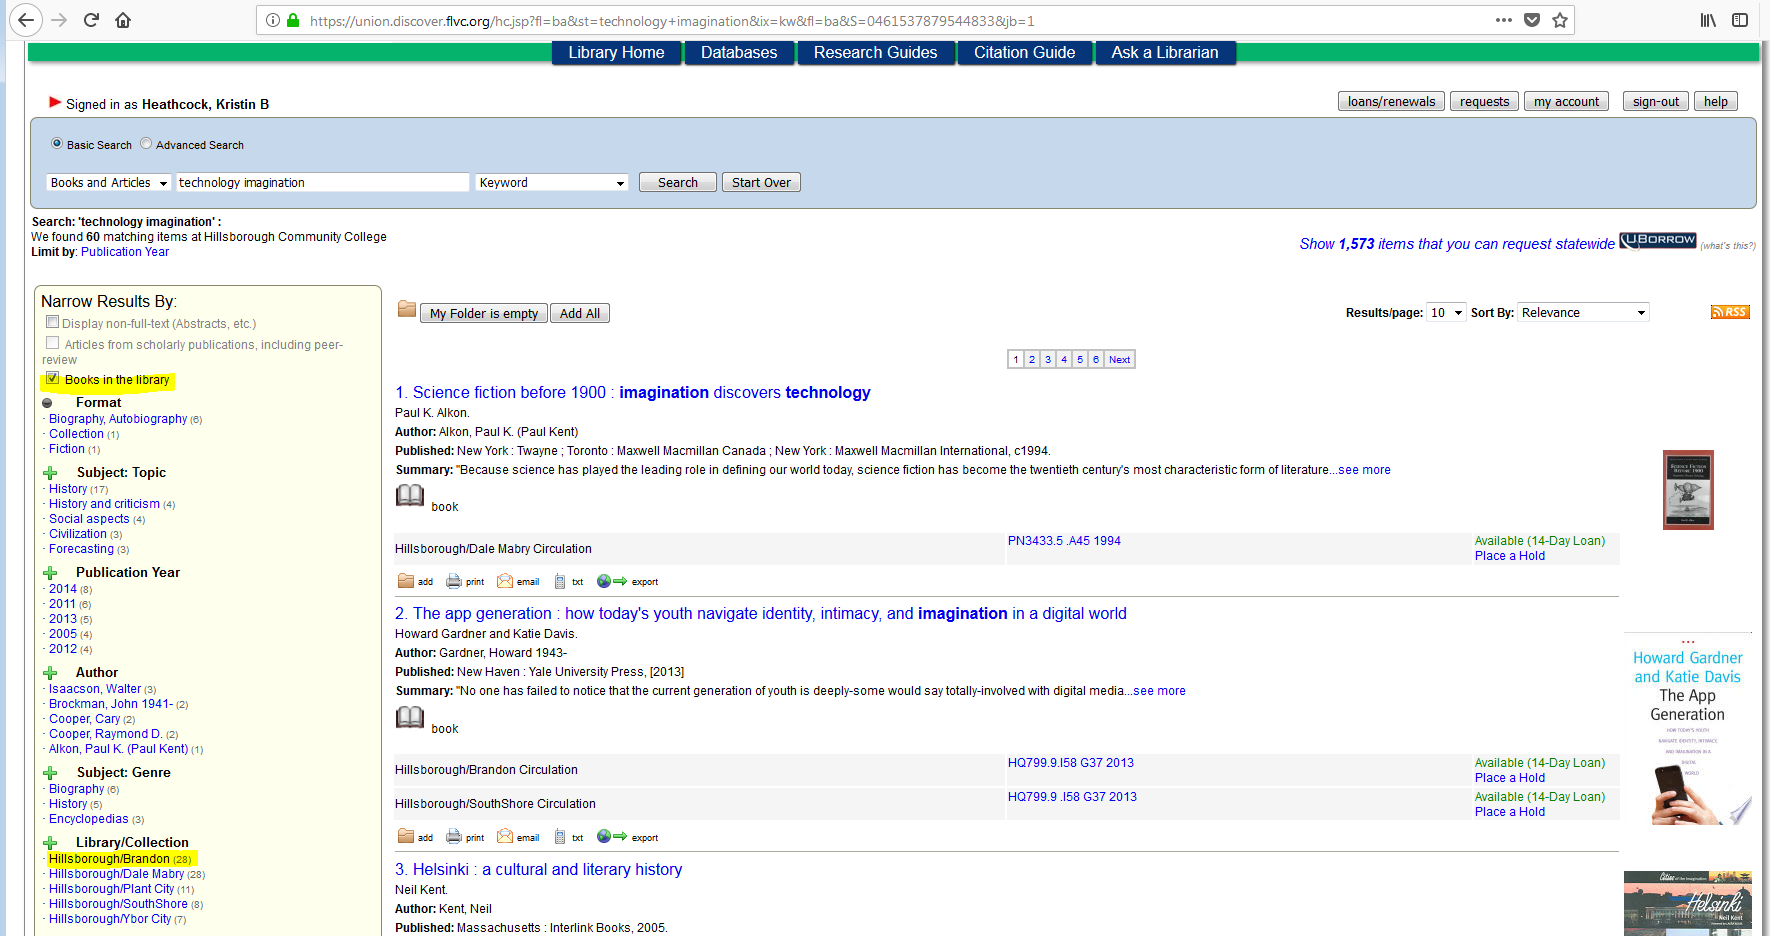 Book search in library catalog results